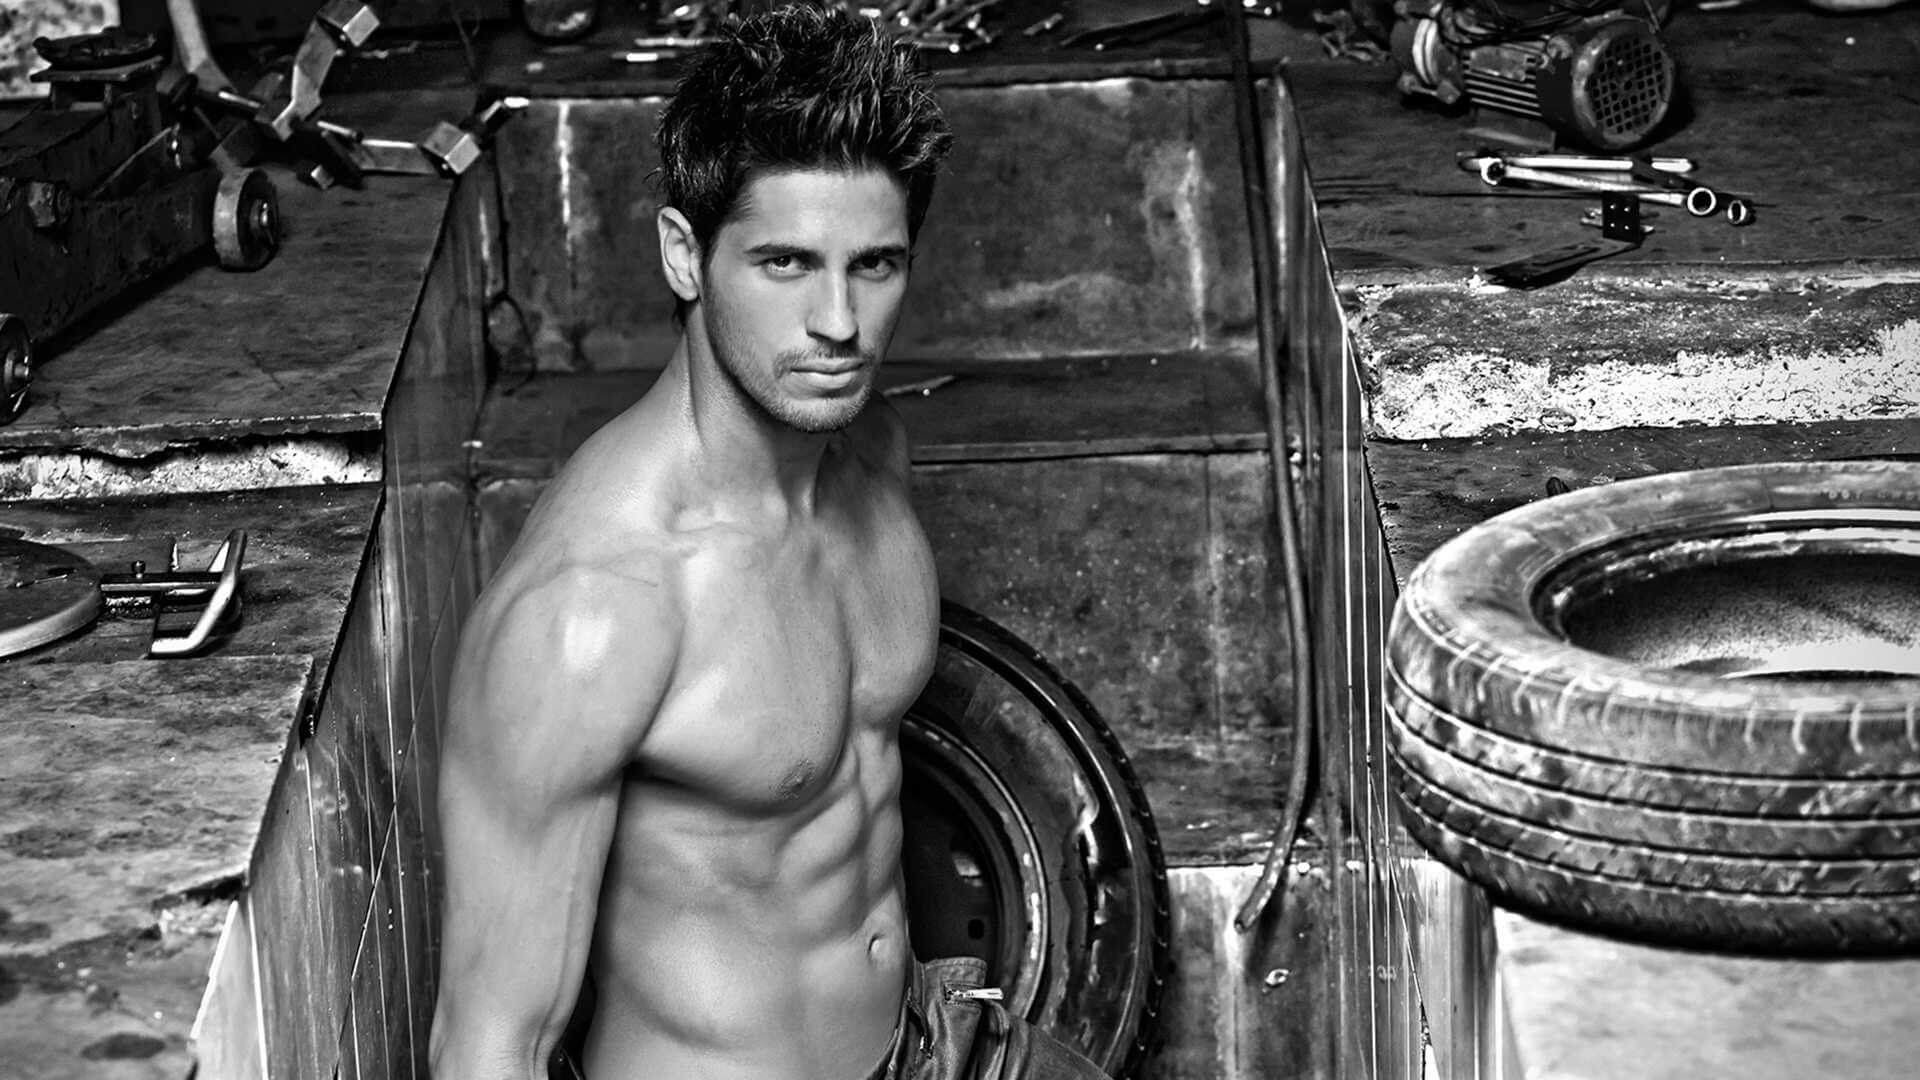 Sidharth Malhotra Movies, Height, Age, Photos, Birth Date, Biography, Girlfriend, Family, Hairstyle, Education, Details, Net Worth, Awards, Wiki, Instagram, Facebook, Imdb, Twitter (9)